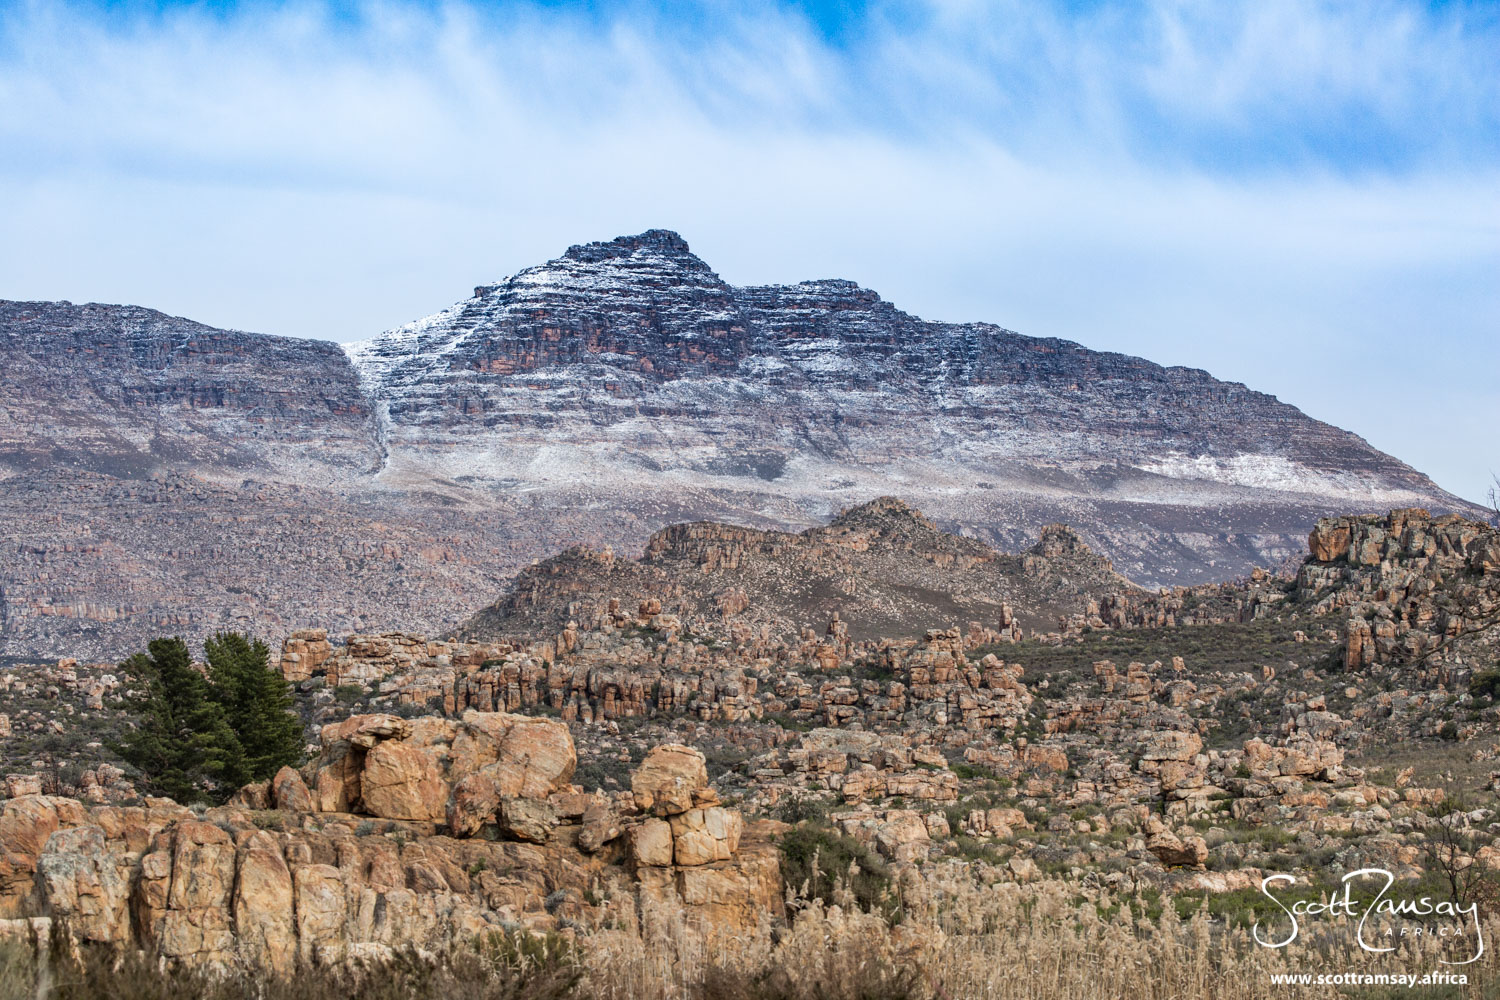 """Sneeuberg - meaning """"snow mountain"""" in Afrikaans - is suitably decorated with snowfall after the cold winter of 2020."""